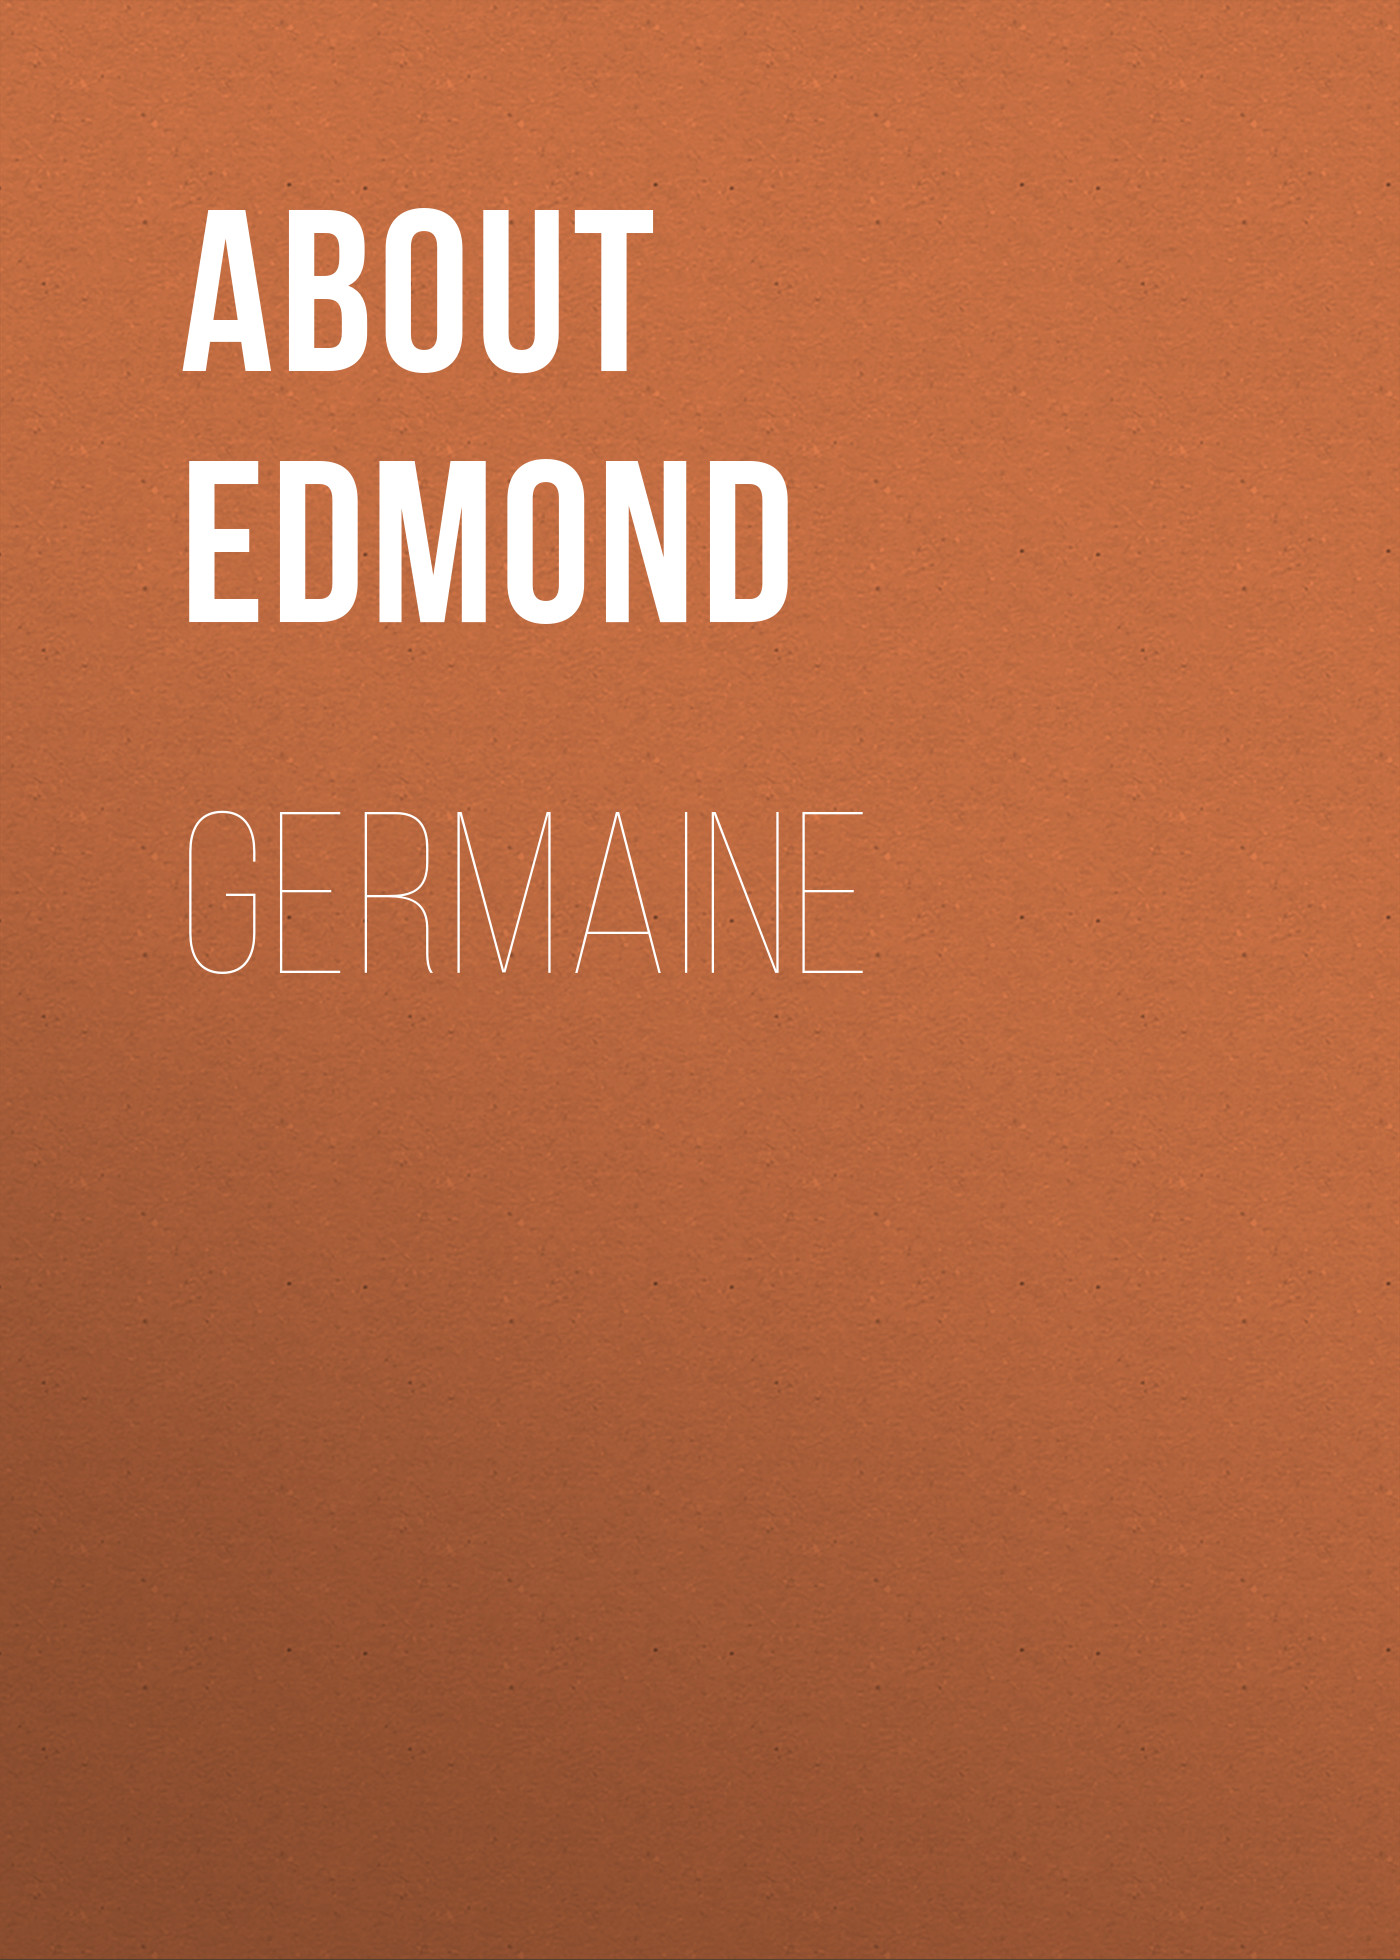 About Edmond Germaine